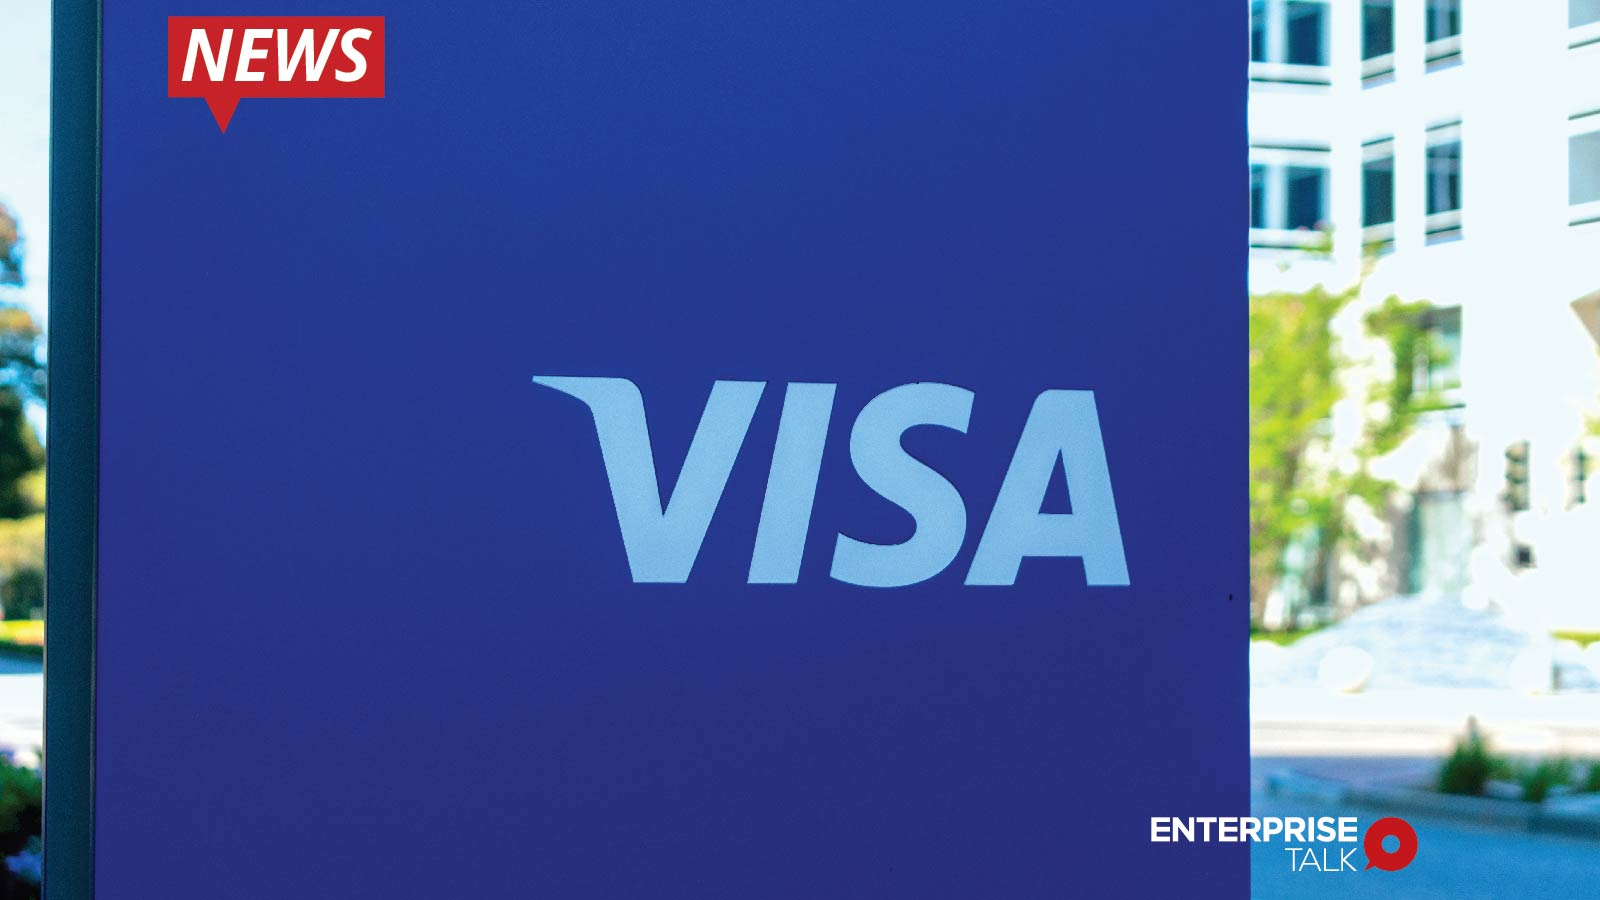 TransferWise and Visa Announce Global Partnership Following Successful Collaboration on Cloud Technology (1)